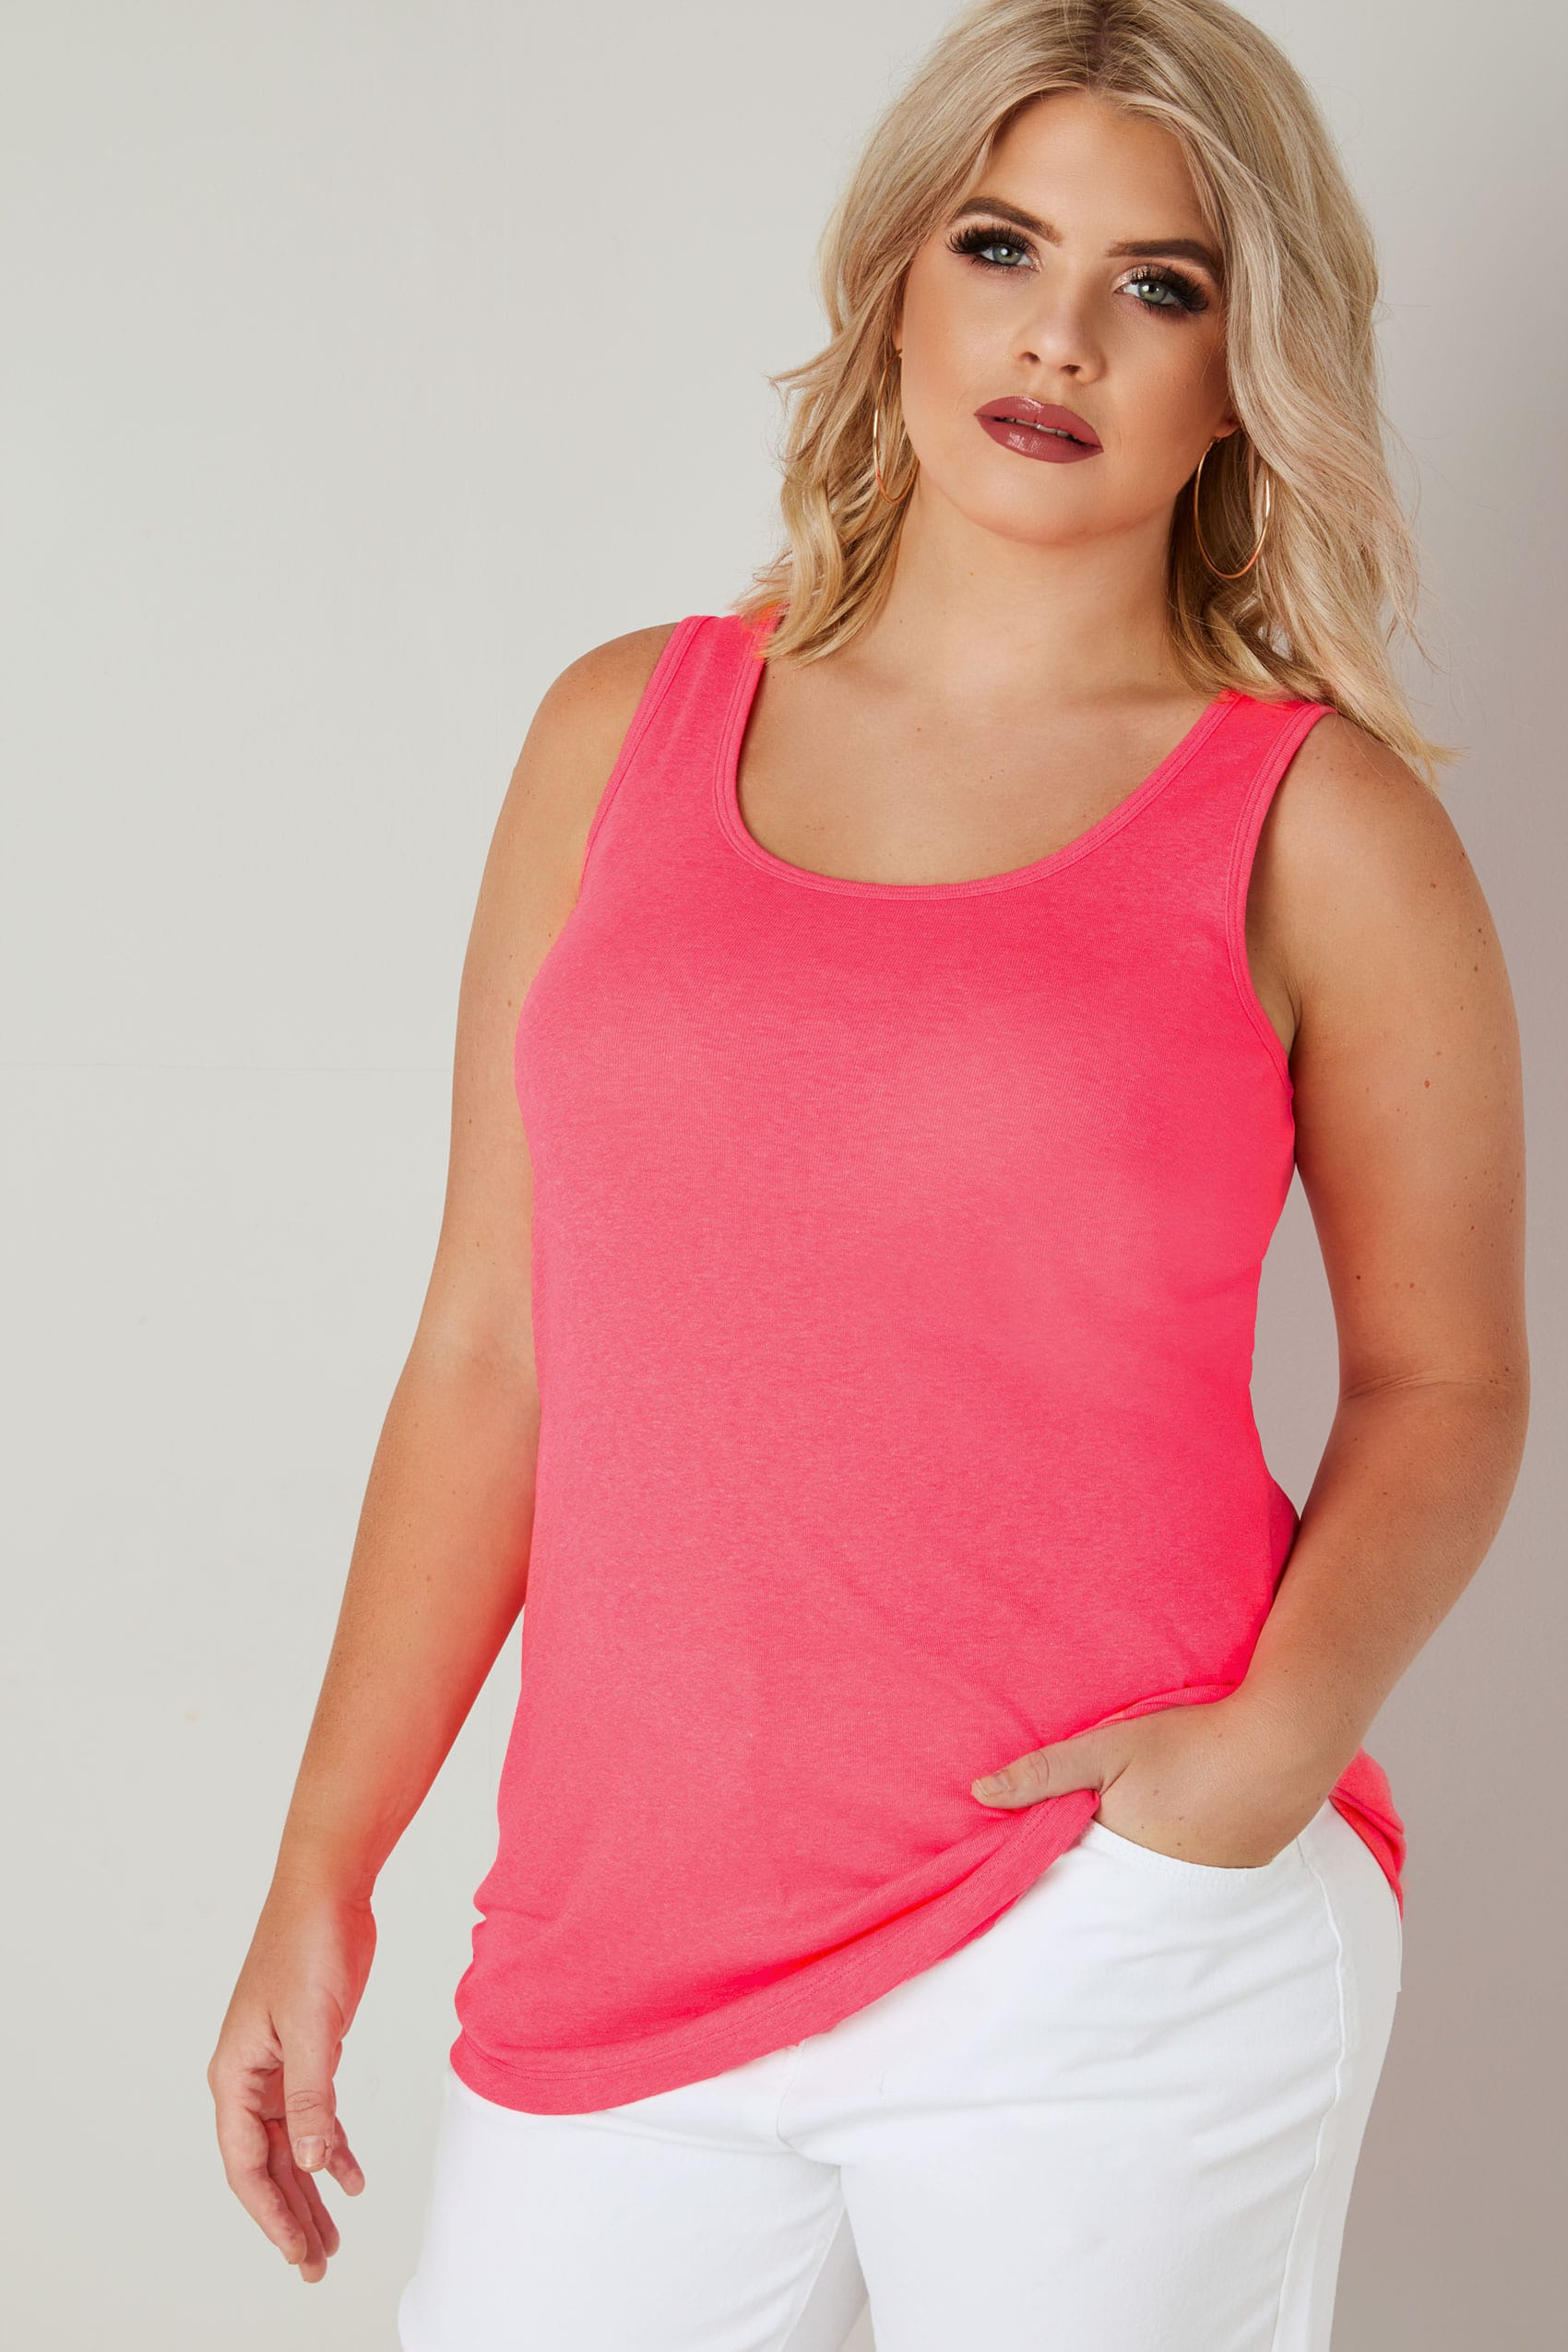 Neon Pink Vest Top, Plus Size 16 To 36